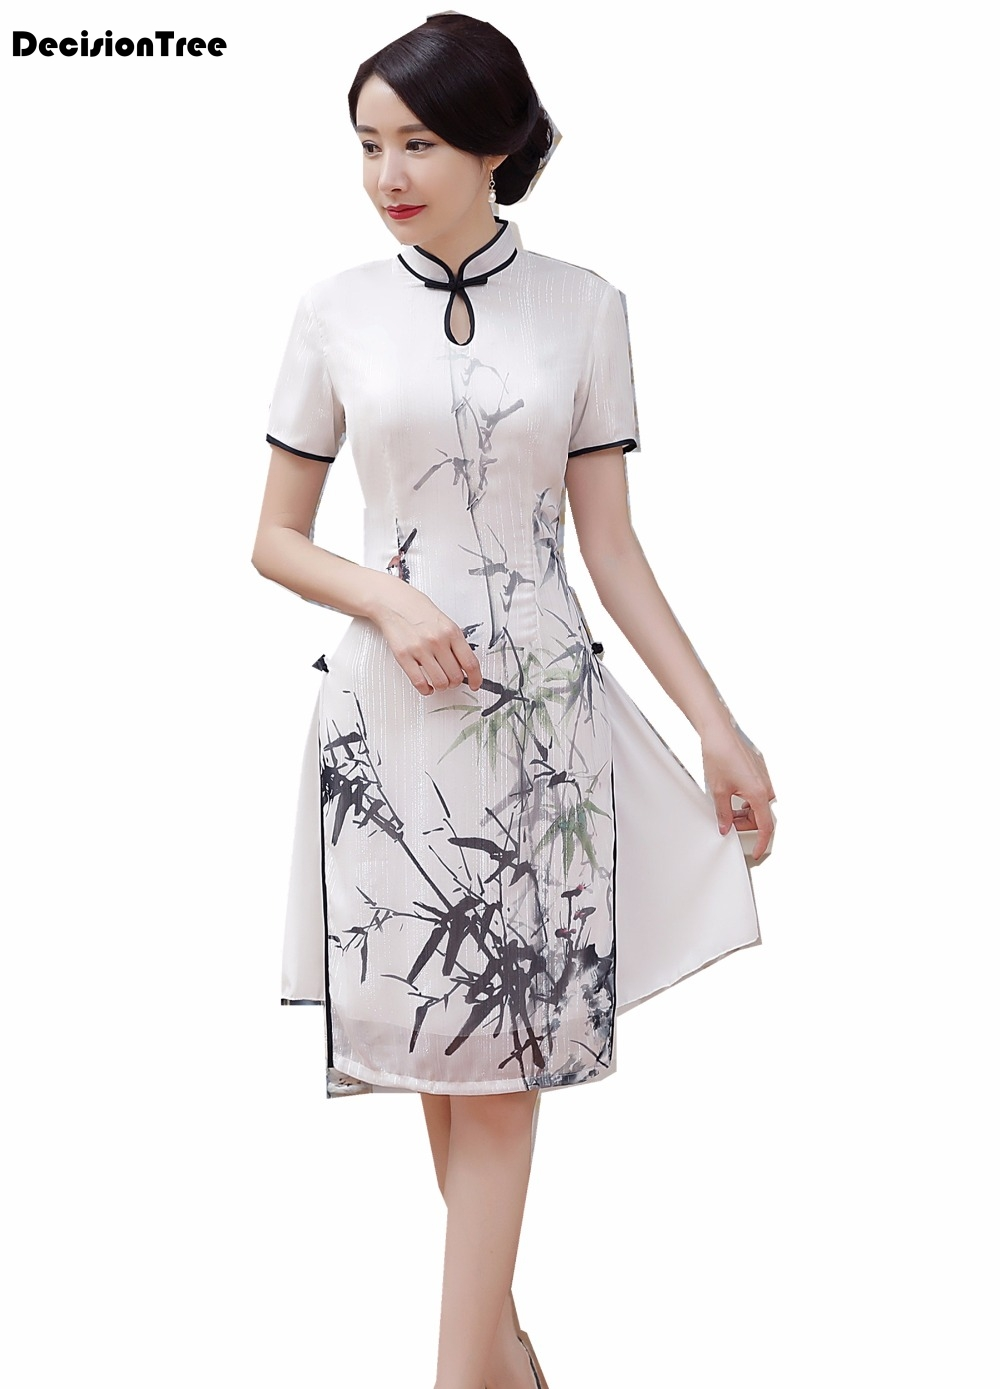 2019 White Vietnam Aodai Chinese Traditional Clothing For Woman Ladies Qipao Knee Length Chinese Oriental Dress